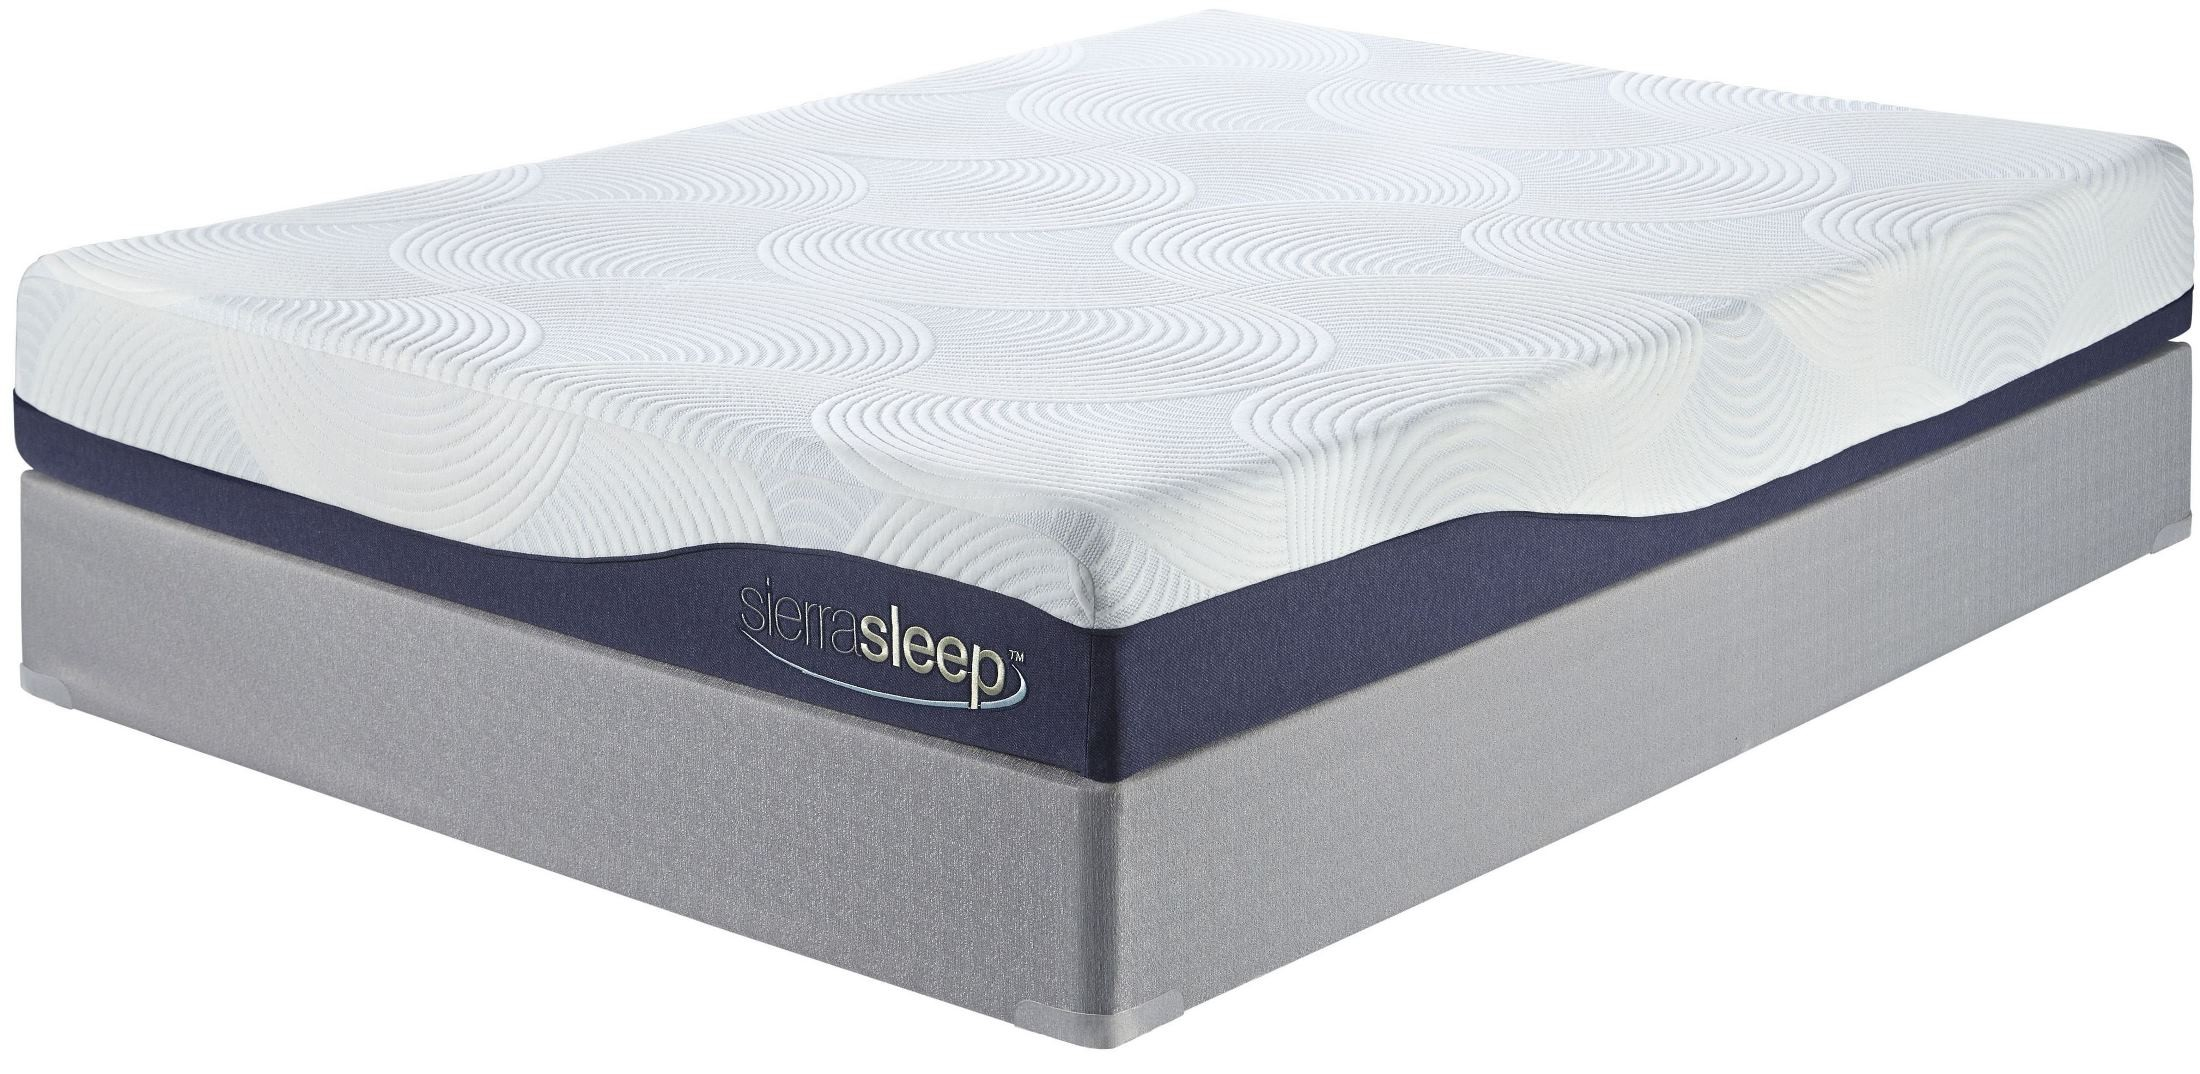 9 Inch Gel Memory Foam White King Mattress From Ashley M97241 Coleman Furniture